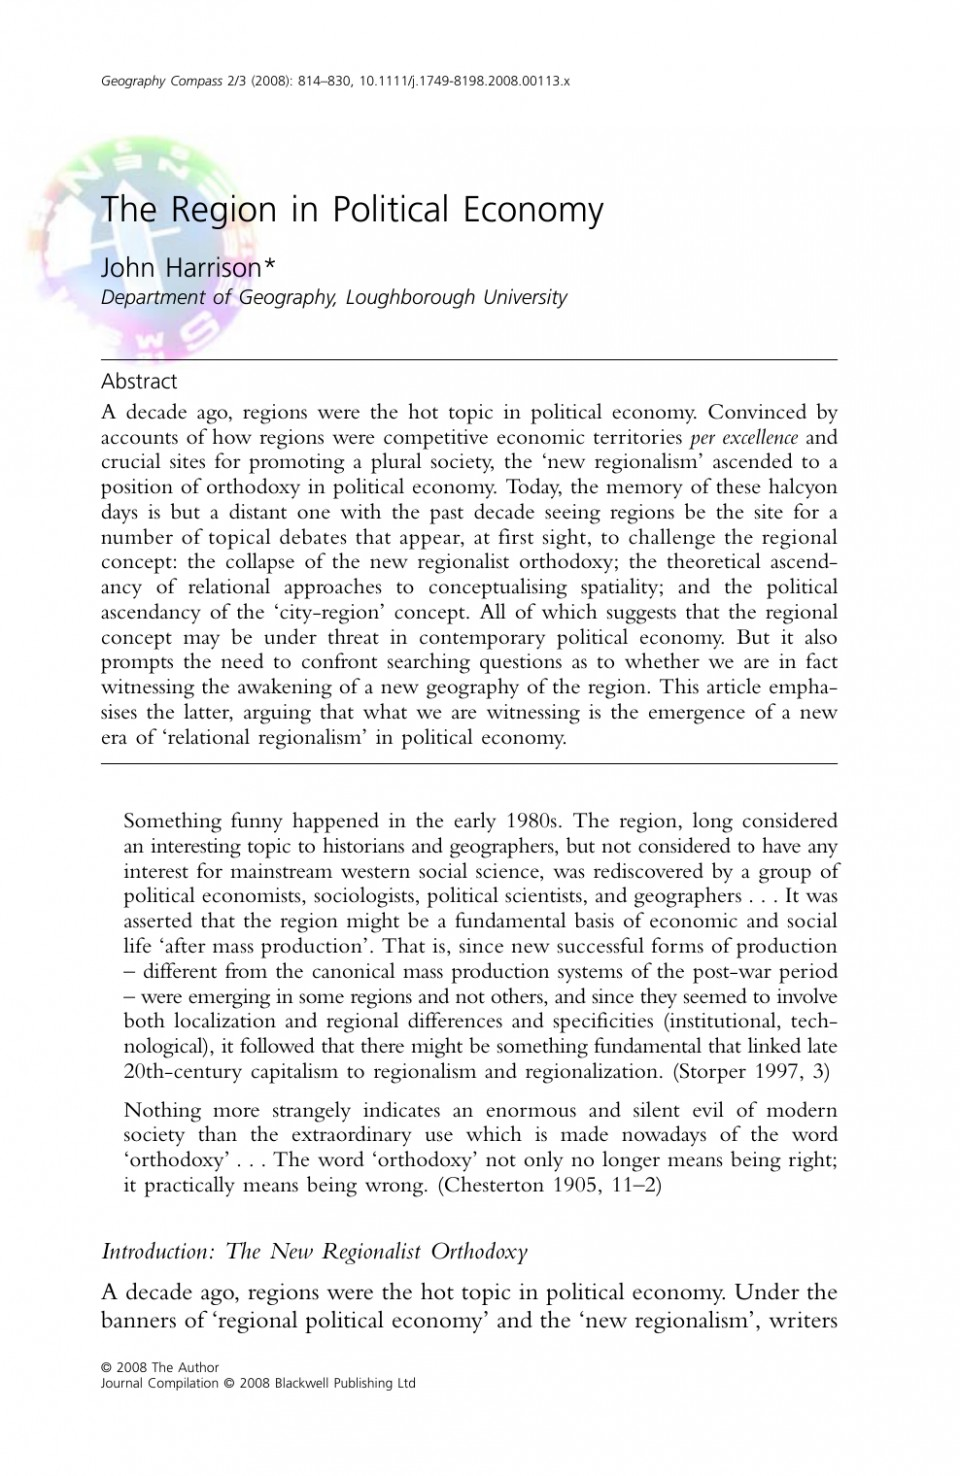 003 Research Paper Political Economy Topics Awesome Global International 960